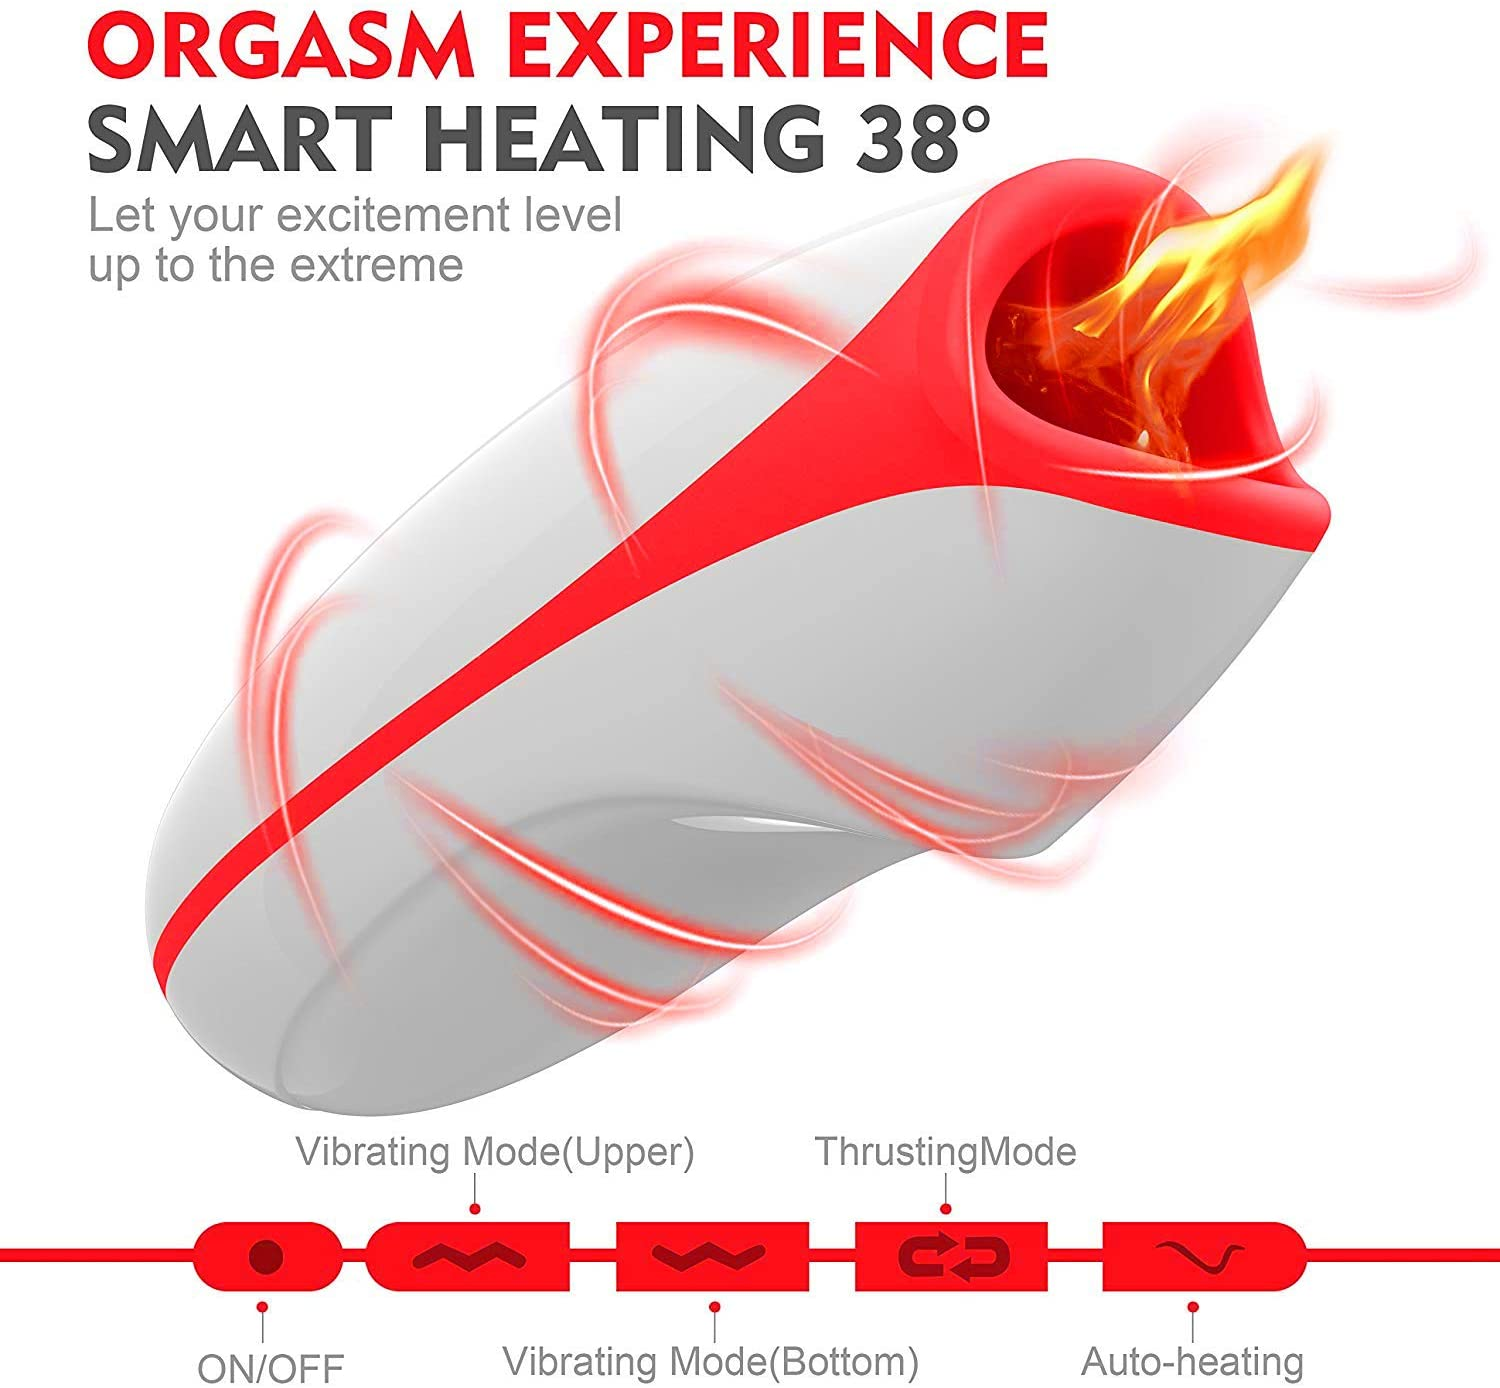 Man Cup Smart Heating Electric Blow-Job Deep Throat Sucking Vibrating Male Masturbator Toy Oral Cup Male Mǎsturbation Cup Hands Free Strǒker for Men Suction Toy Underwear for Men Bedroom Pleasure Toy